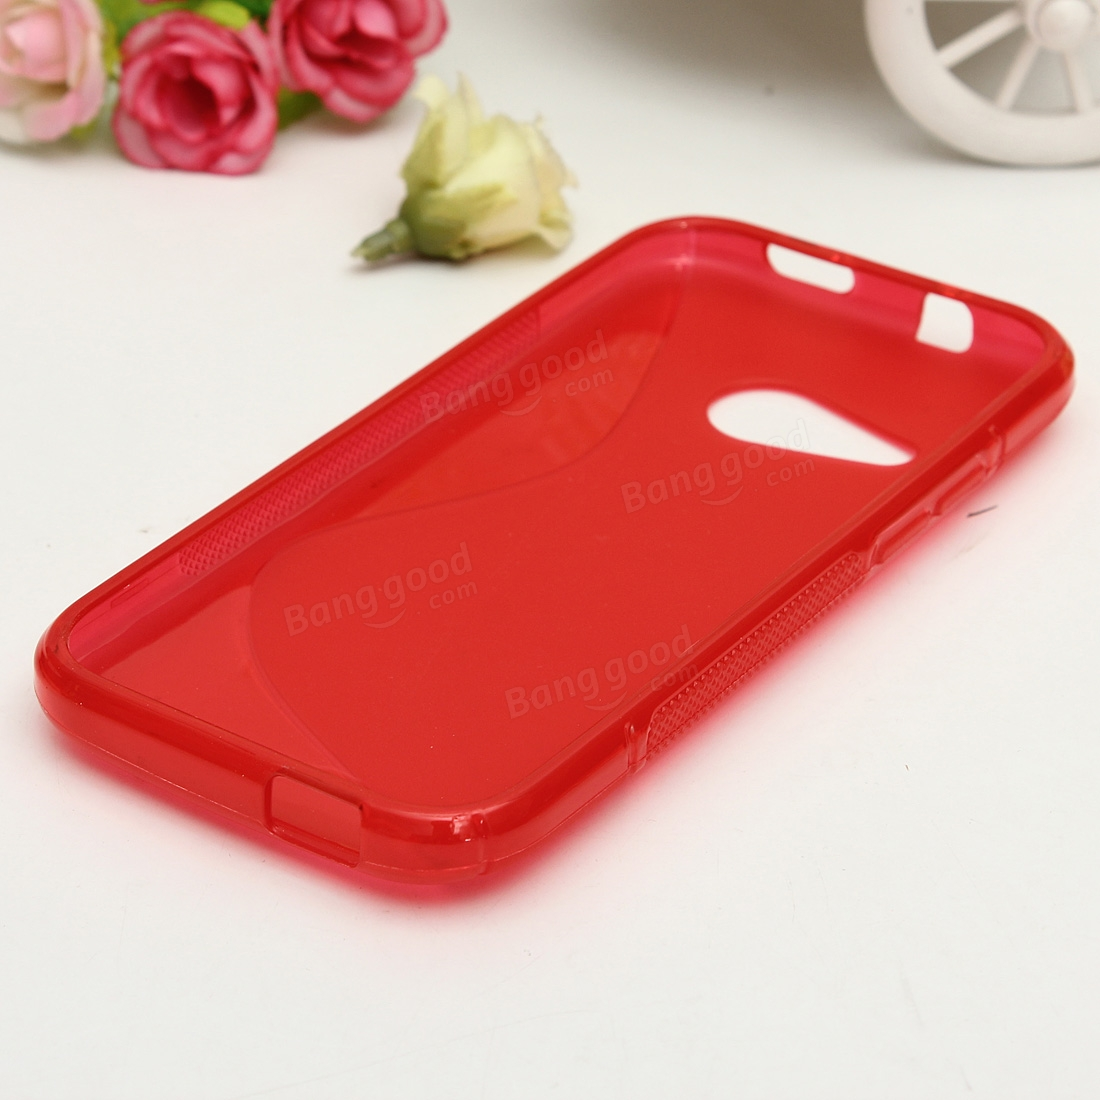 S Line Soft TPU Transparent Silicone Back Case For HTC One M8 Mini